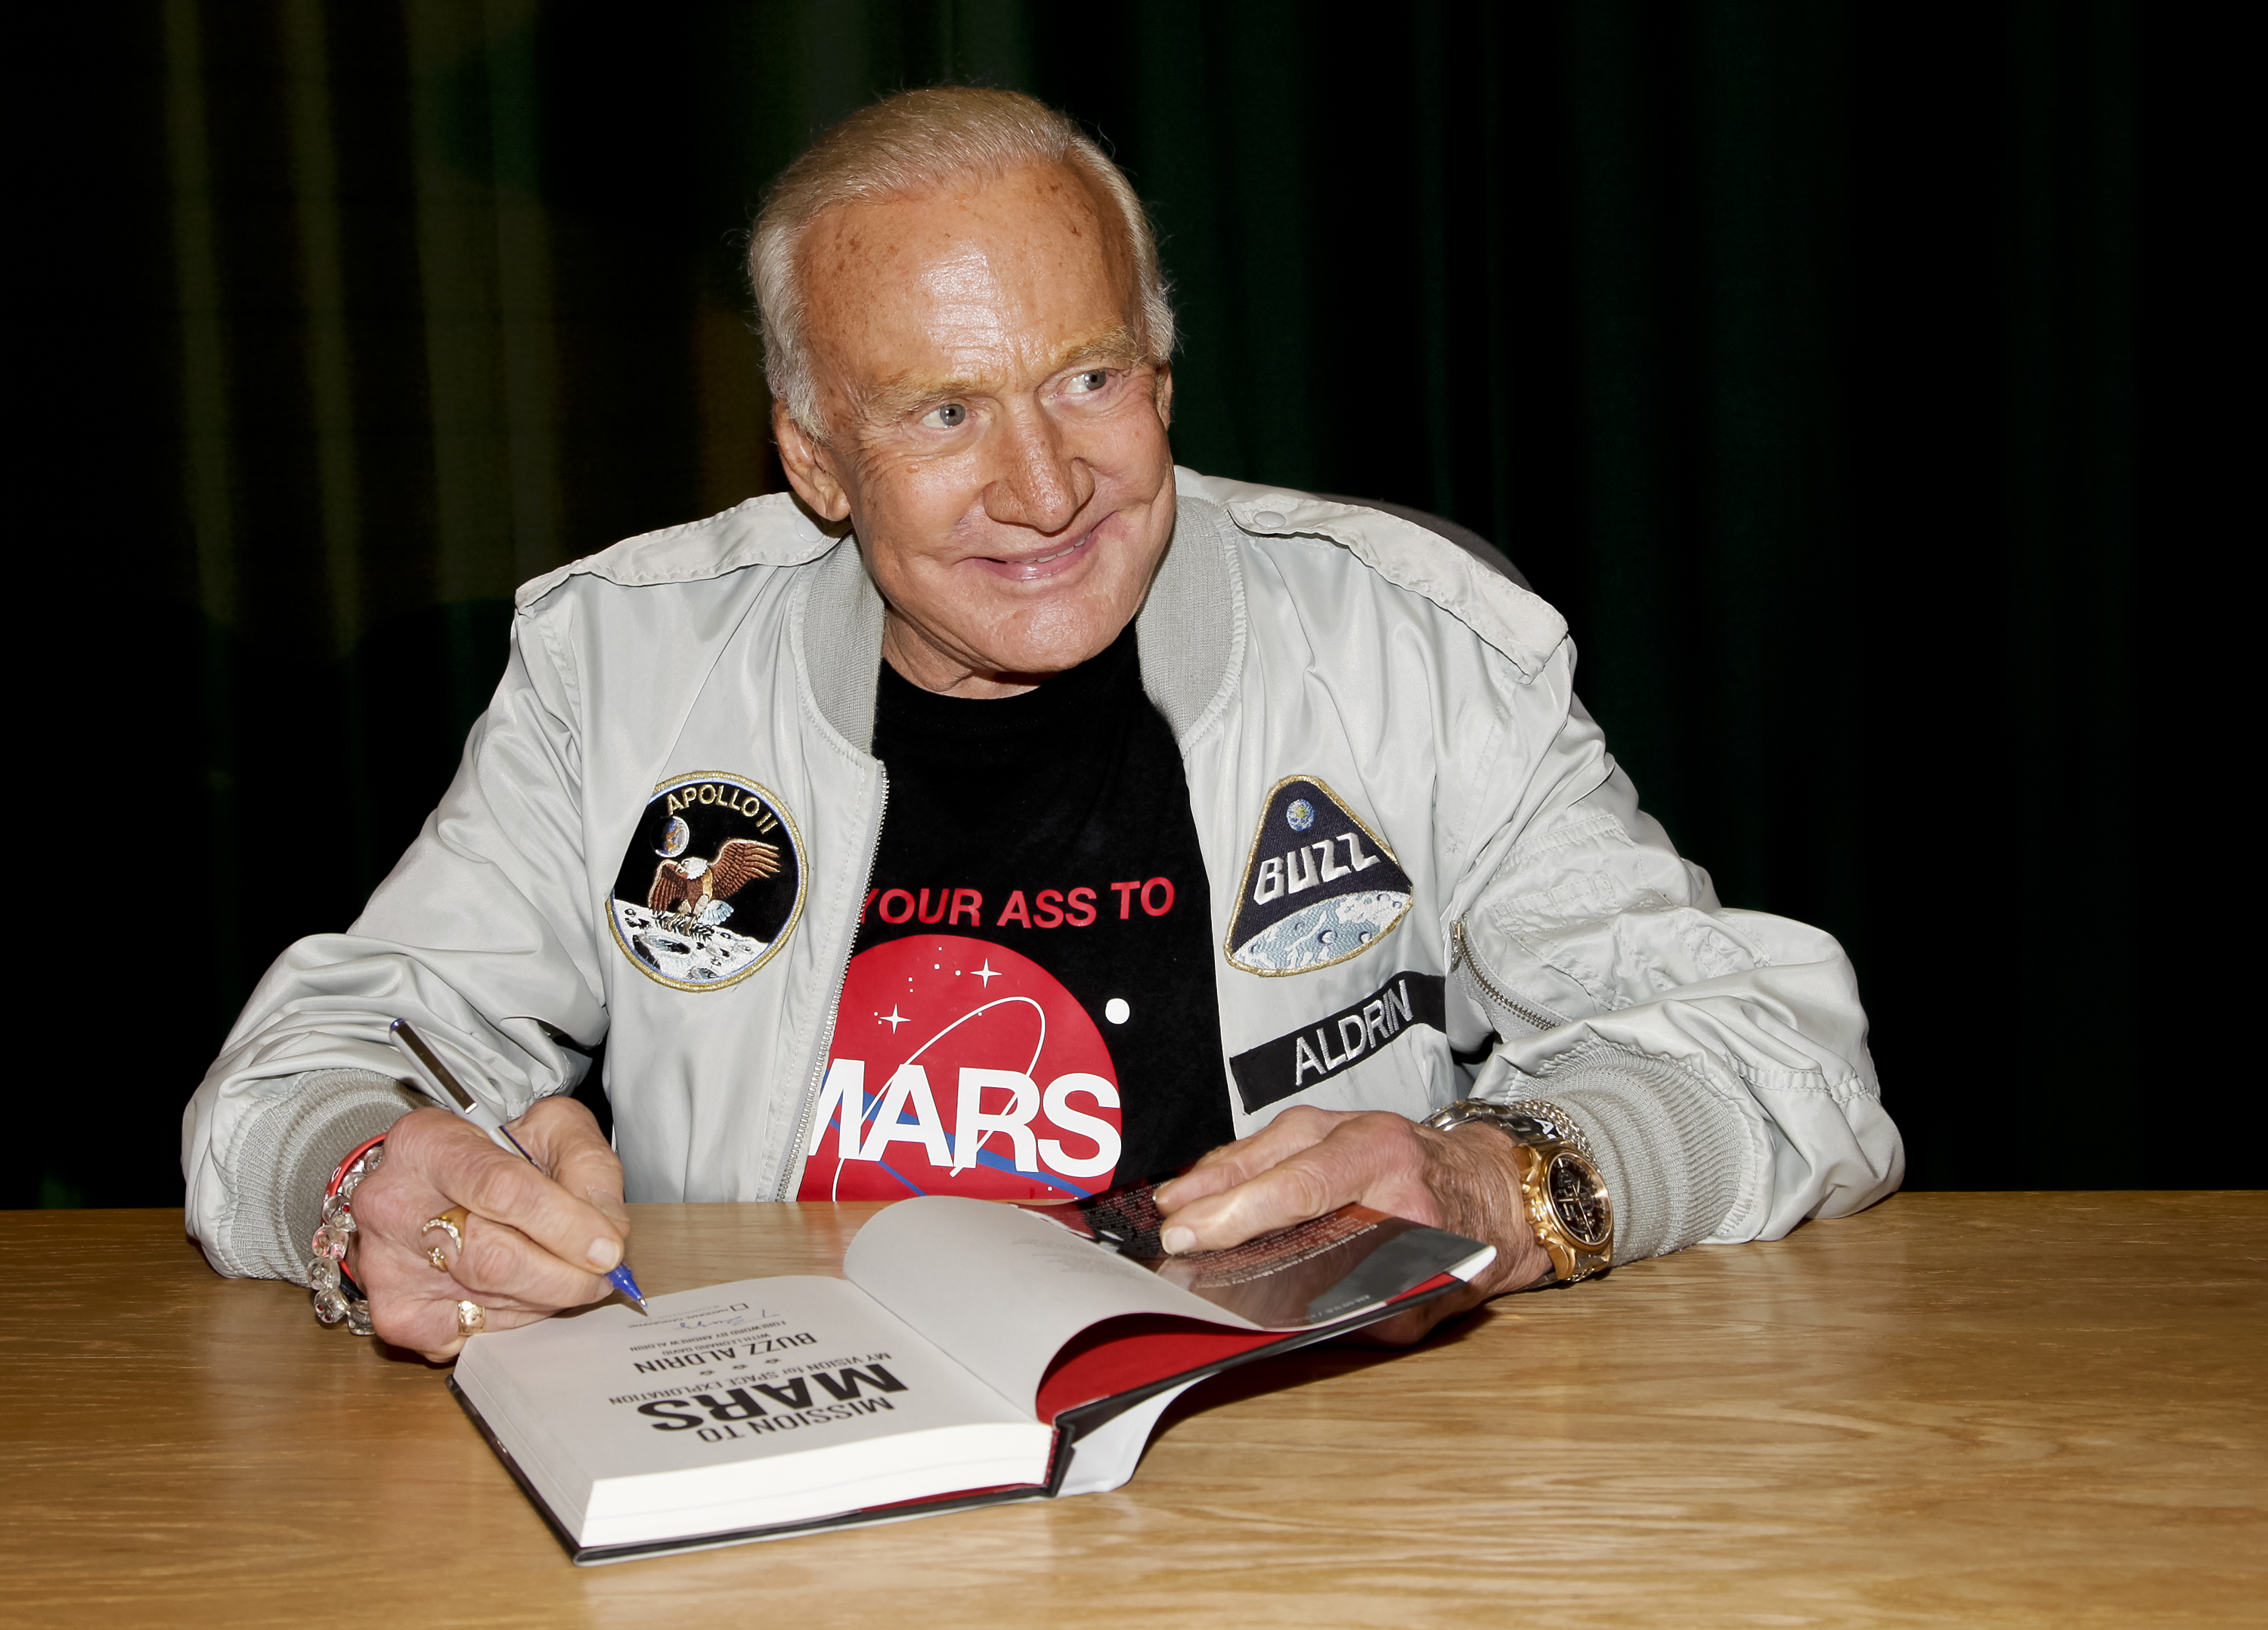 Buzz Aldrin signs copies of his book at at Barnes & Noble Booksellers Glendale, Calif. on July 28, 2014.